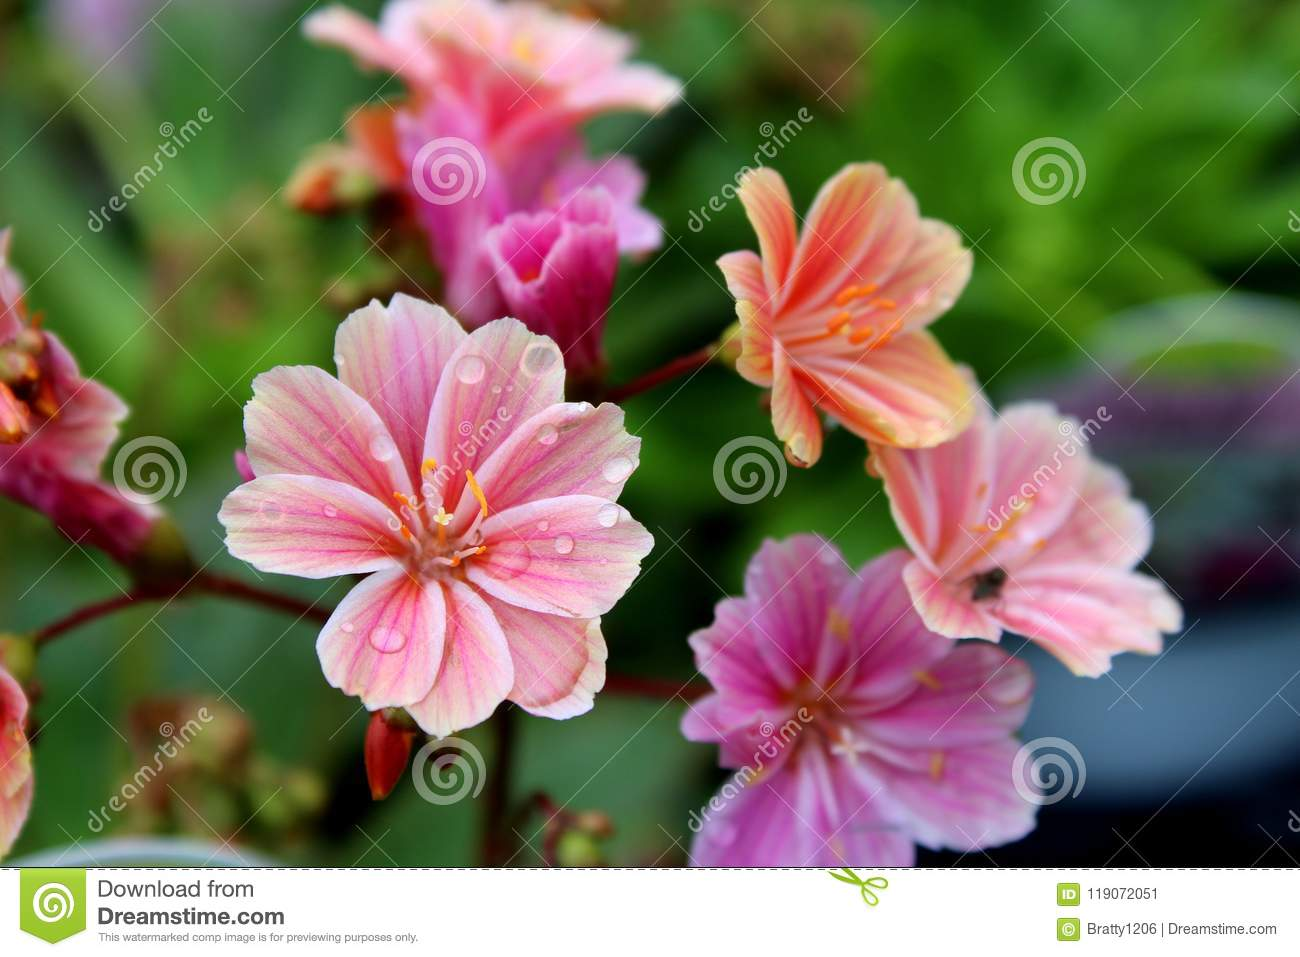 Pretty Pink And Coral Colored Flowers Covered In Early Morning Dew Stock Image Image Of Blossom Bright 119072051